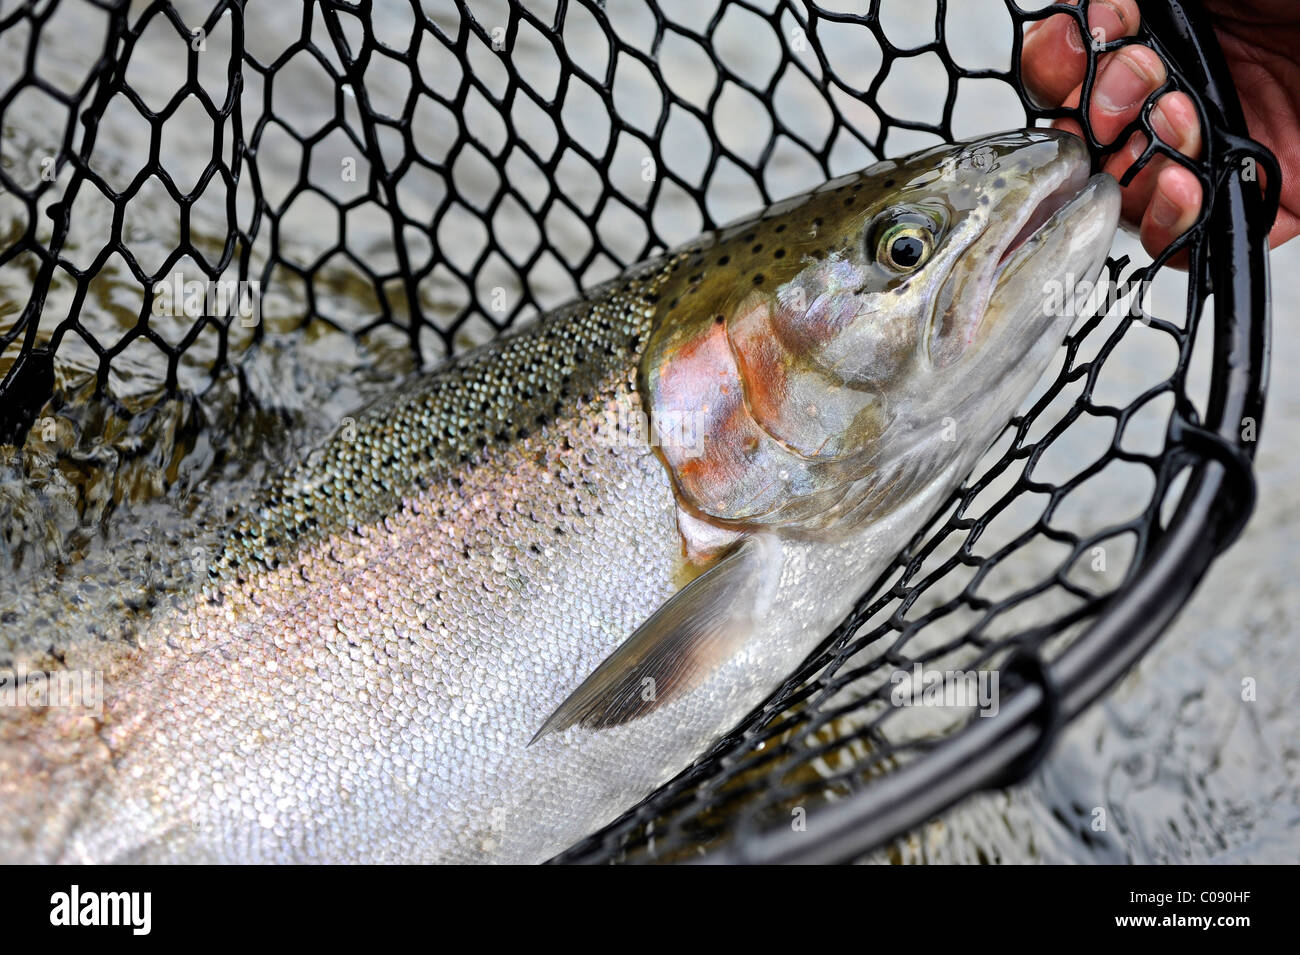 Close up of a wild Steelhead in a net fished on Deep Creek, Kenai Peninsula, Southcentral Alaska, Autumn - Stock Image